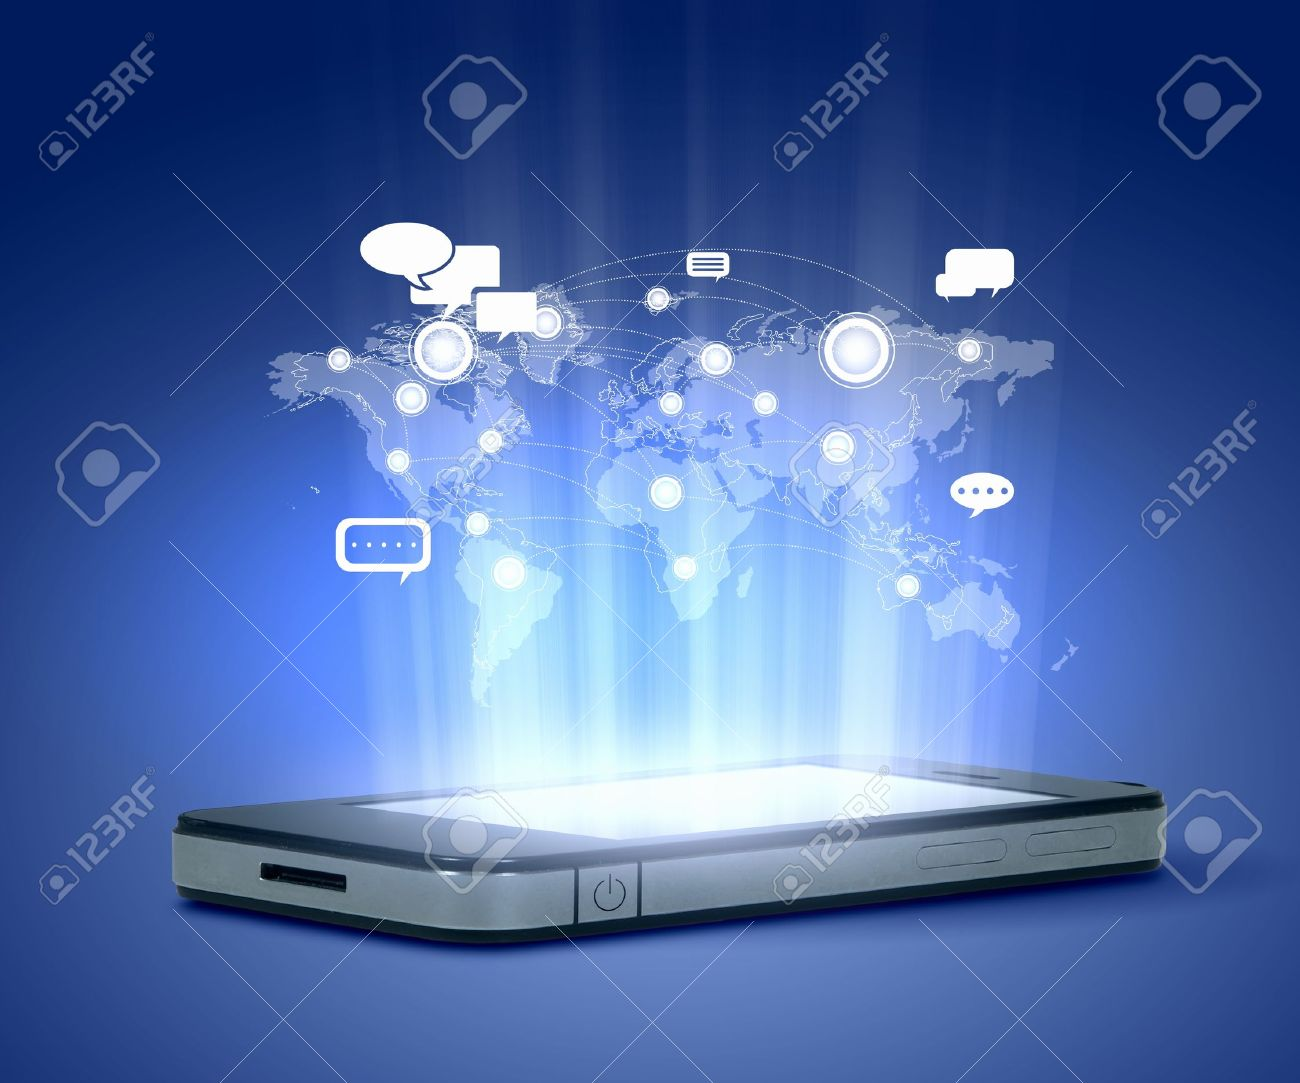 Modern communication technology illustration with mobile phone and high tech background Stock Photo - 17531486